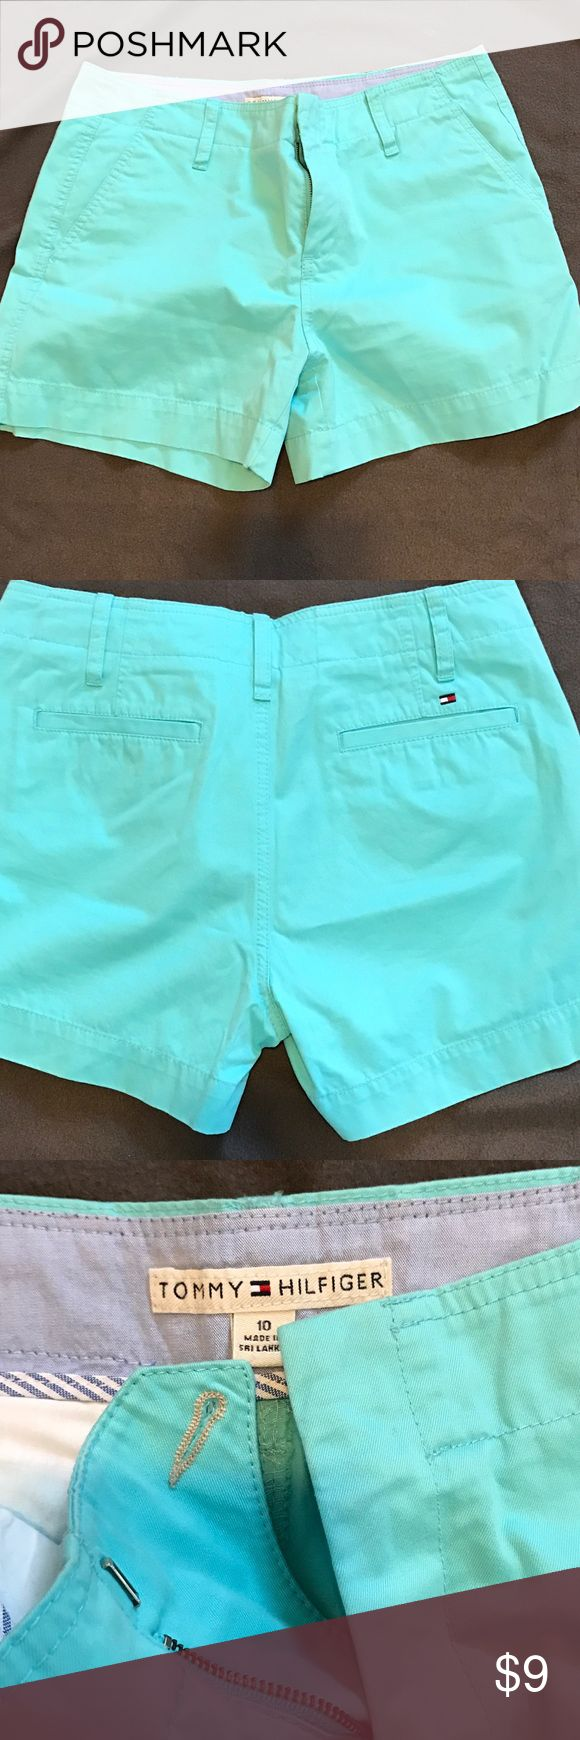 Tommy Hilfiger shorts Aqua shorts with no spots or stains. Look brand new. Khaki material Tommy Hilfiger Shorts